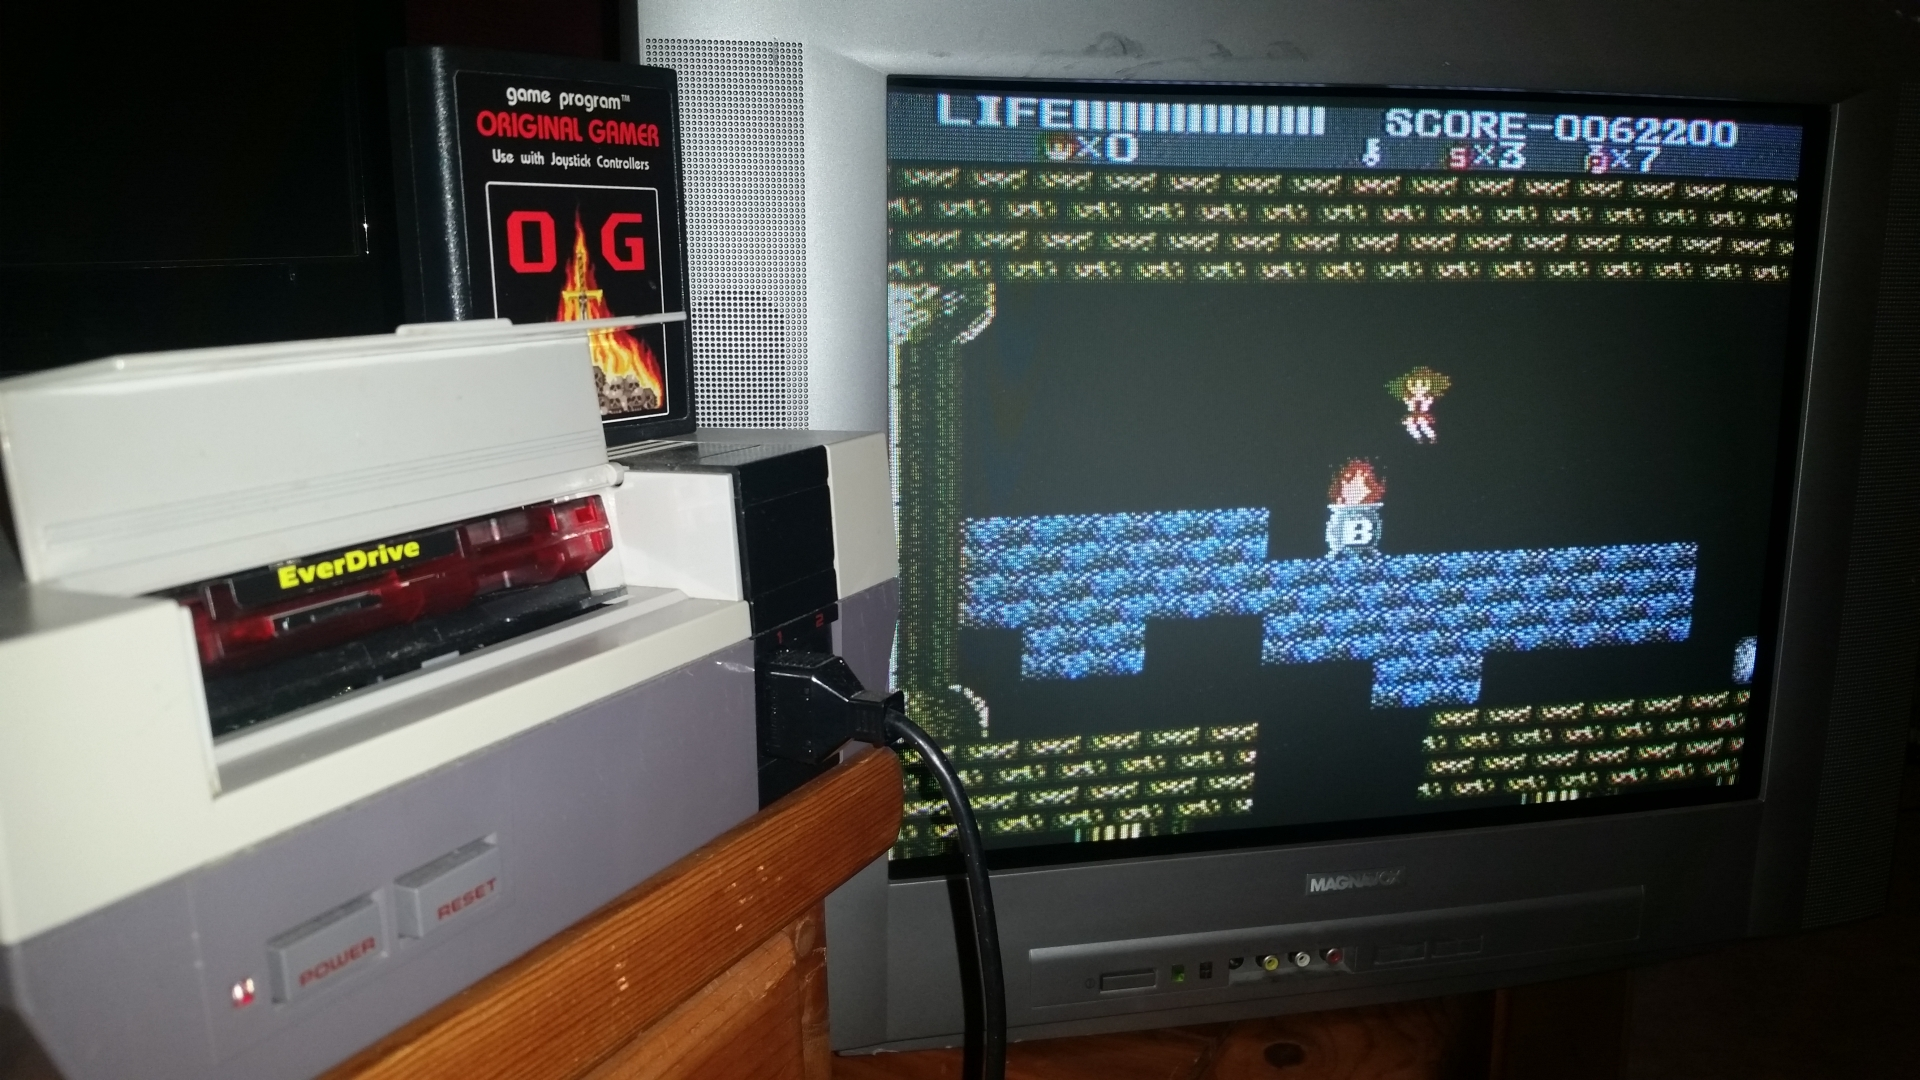 OriginalGamer: Lost Word of Jenny (NES/Famicom) 62,200 points on 2016-09-19 01:19:39